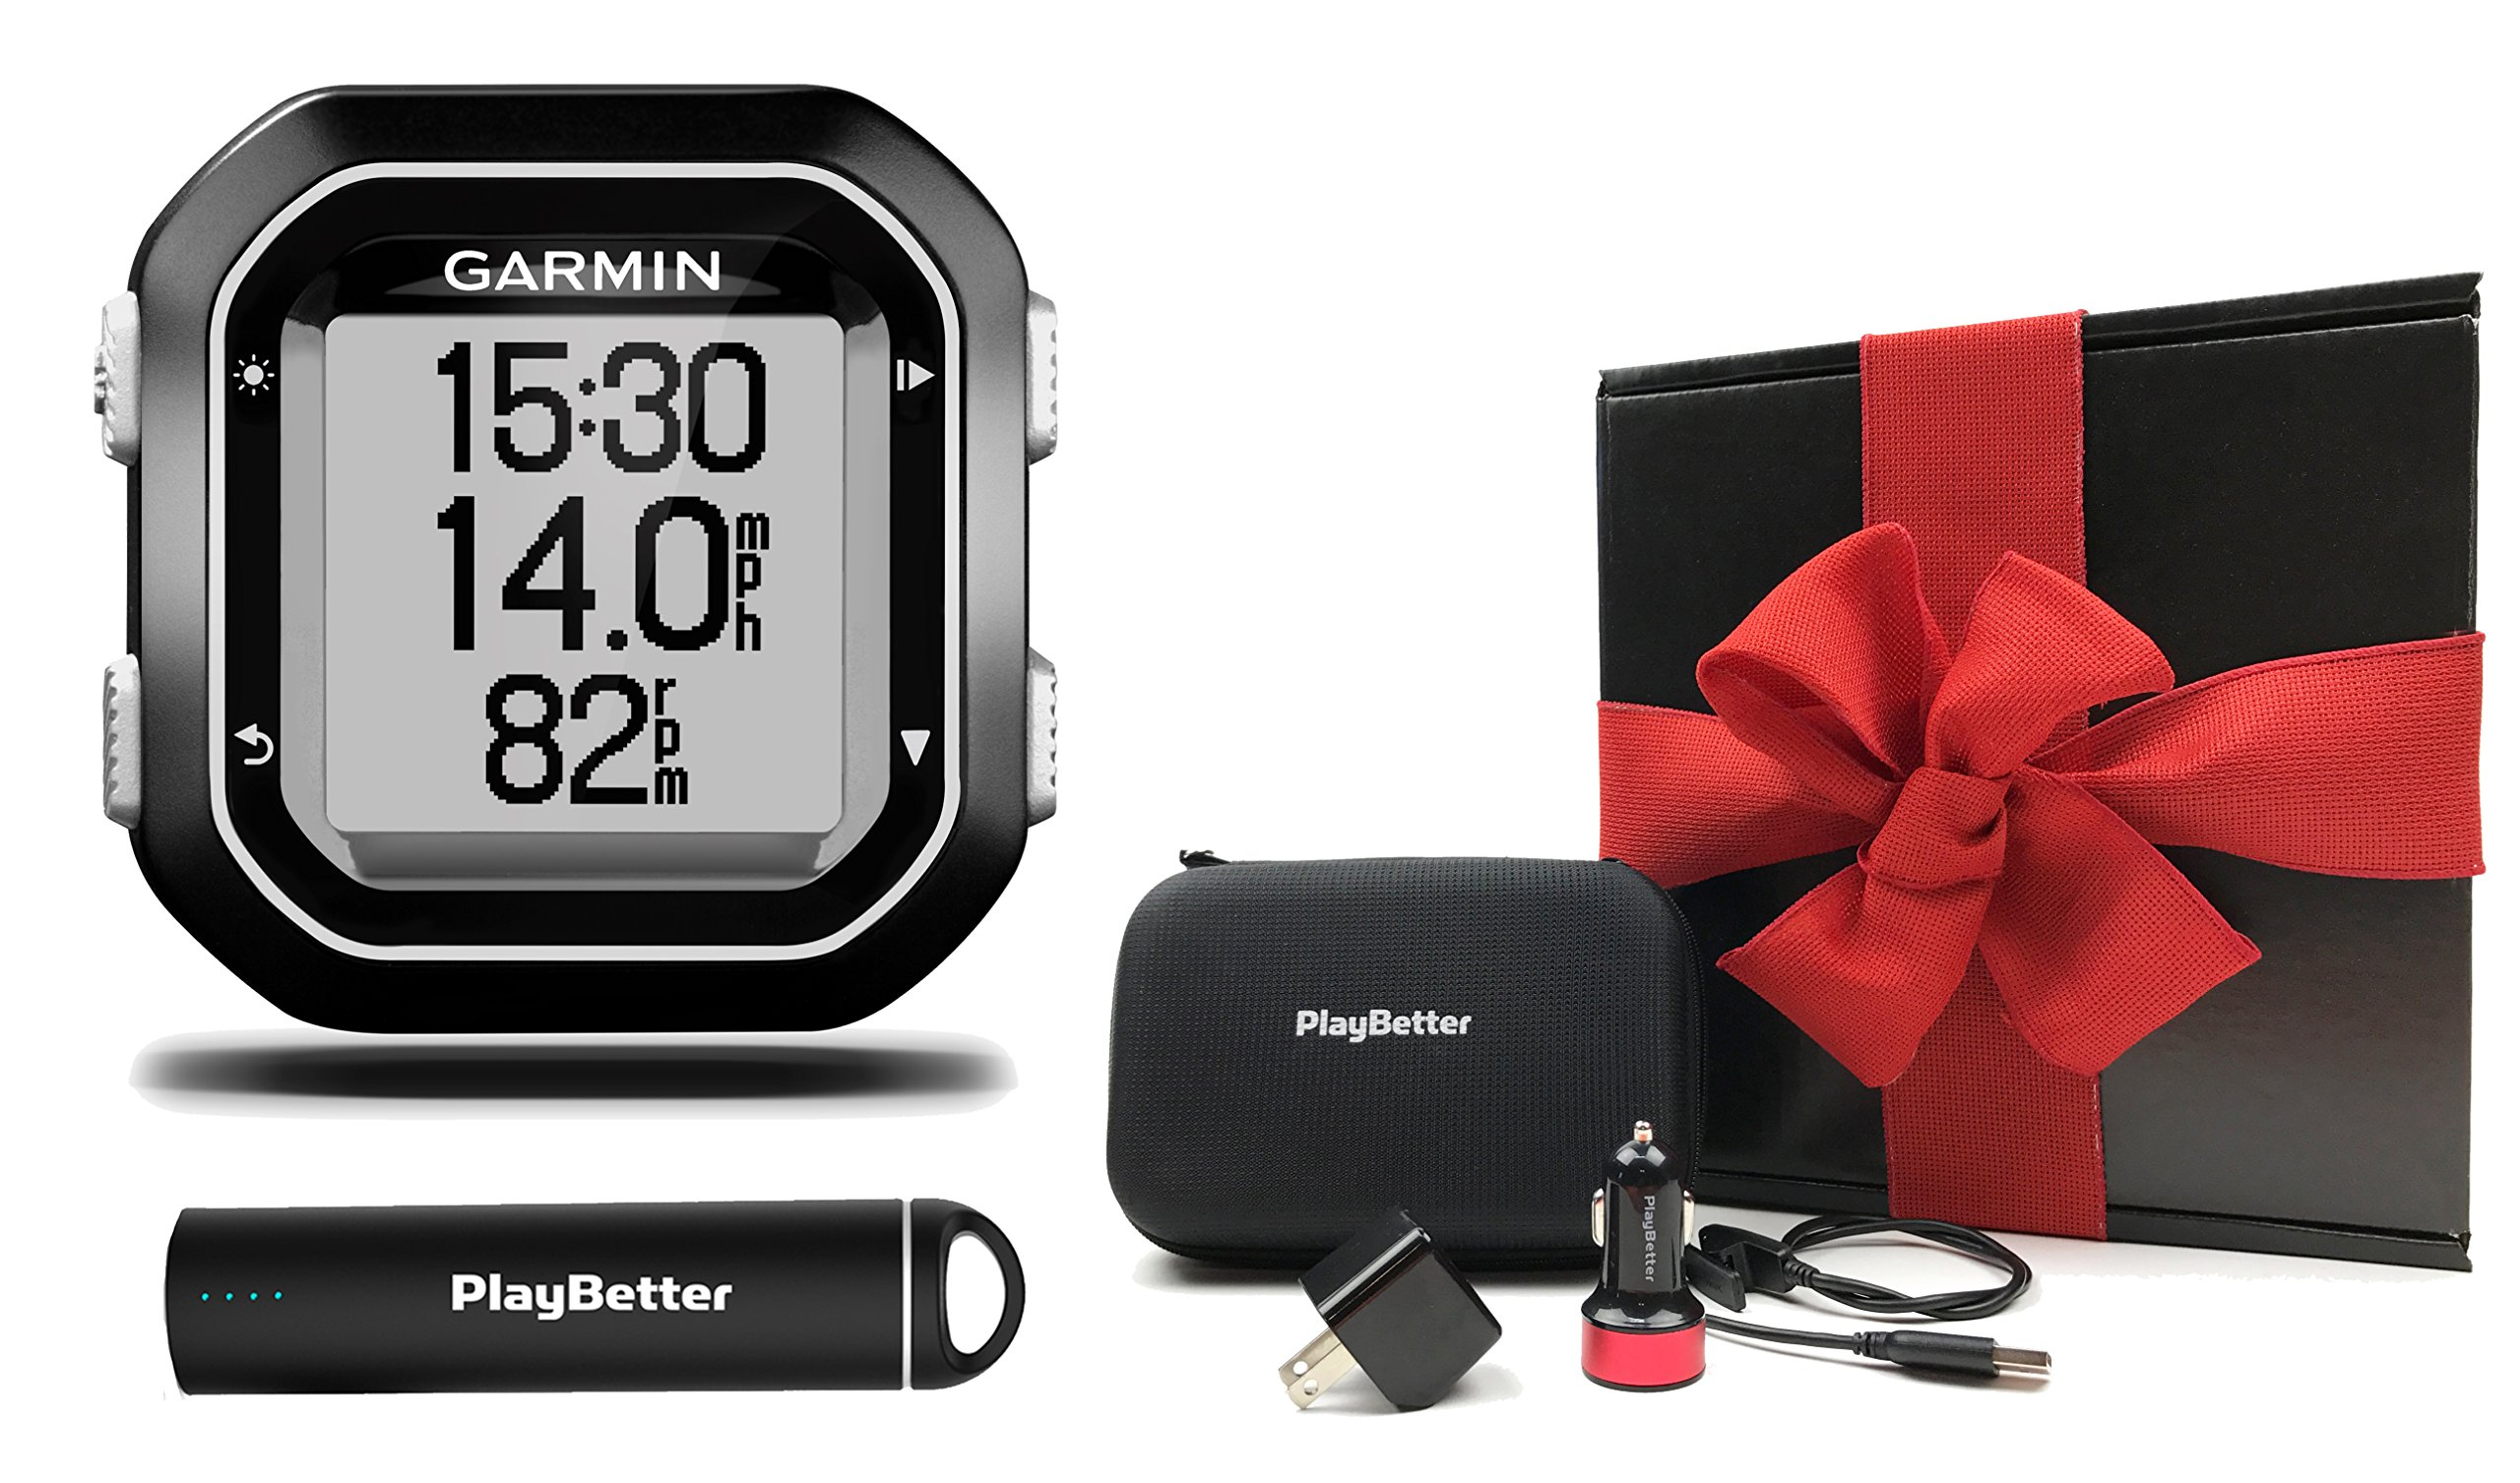 Garmin Edge 25 Gift Box Bundle with PlayBetter Portable Lipstick Charger, Wall/Car USB Adapters & Hard Carrying Case, Bike Mount, USB Cable | Smallest GPS Cycling Computer | Black Gift Box, Red Bow